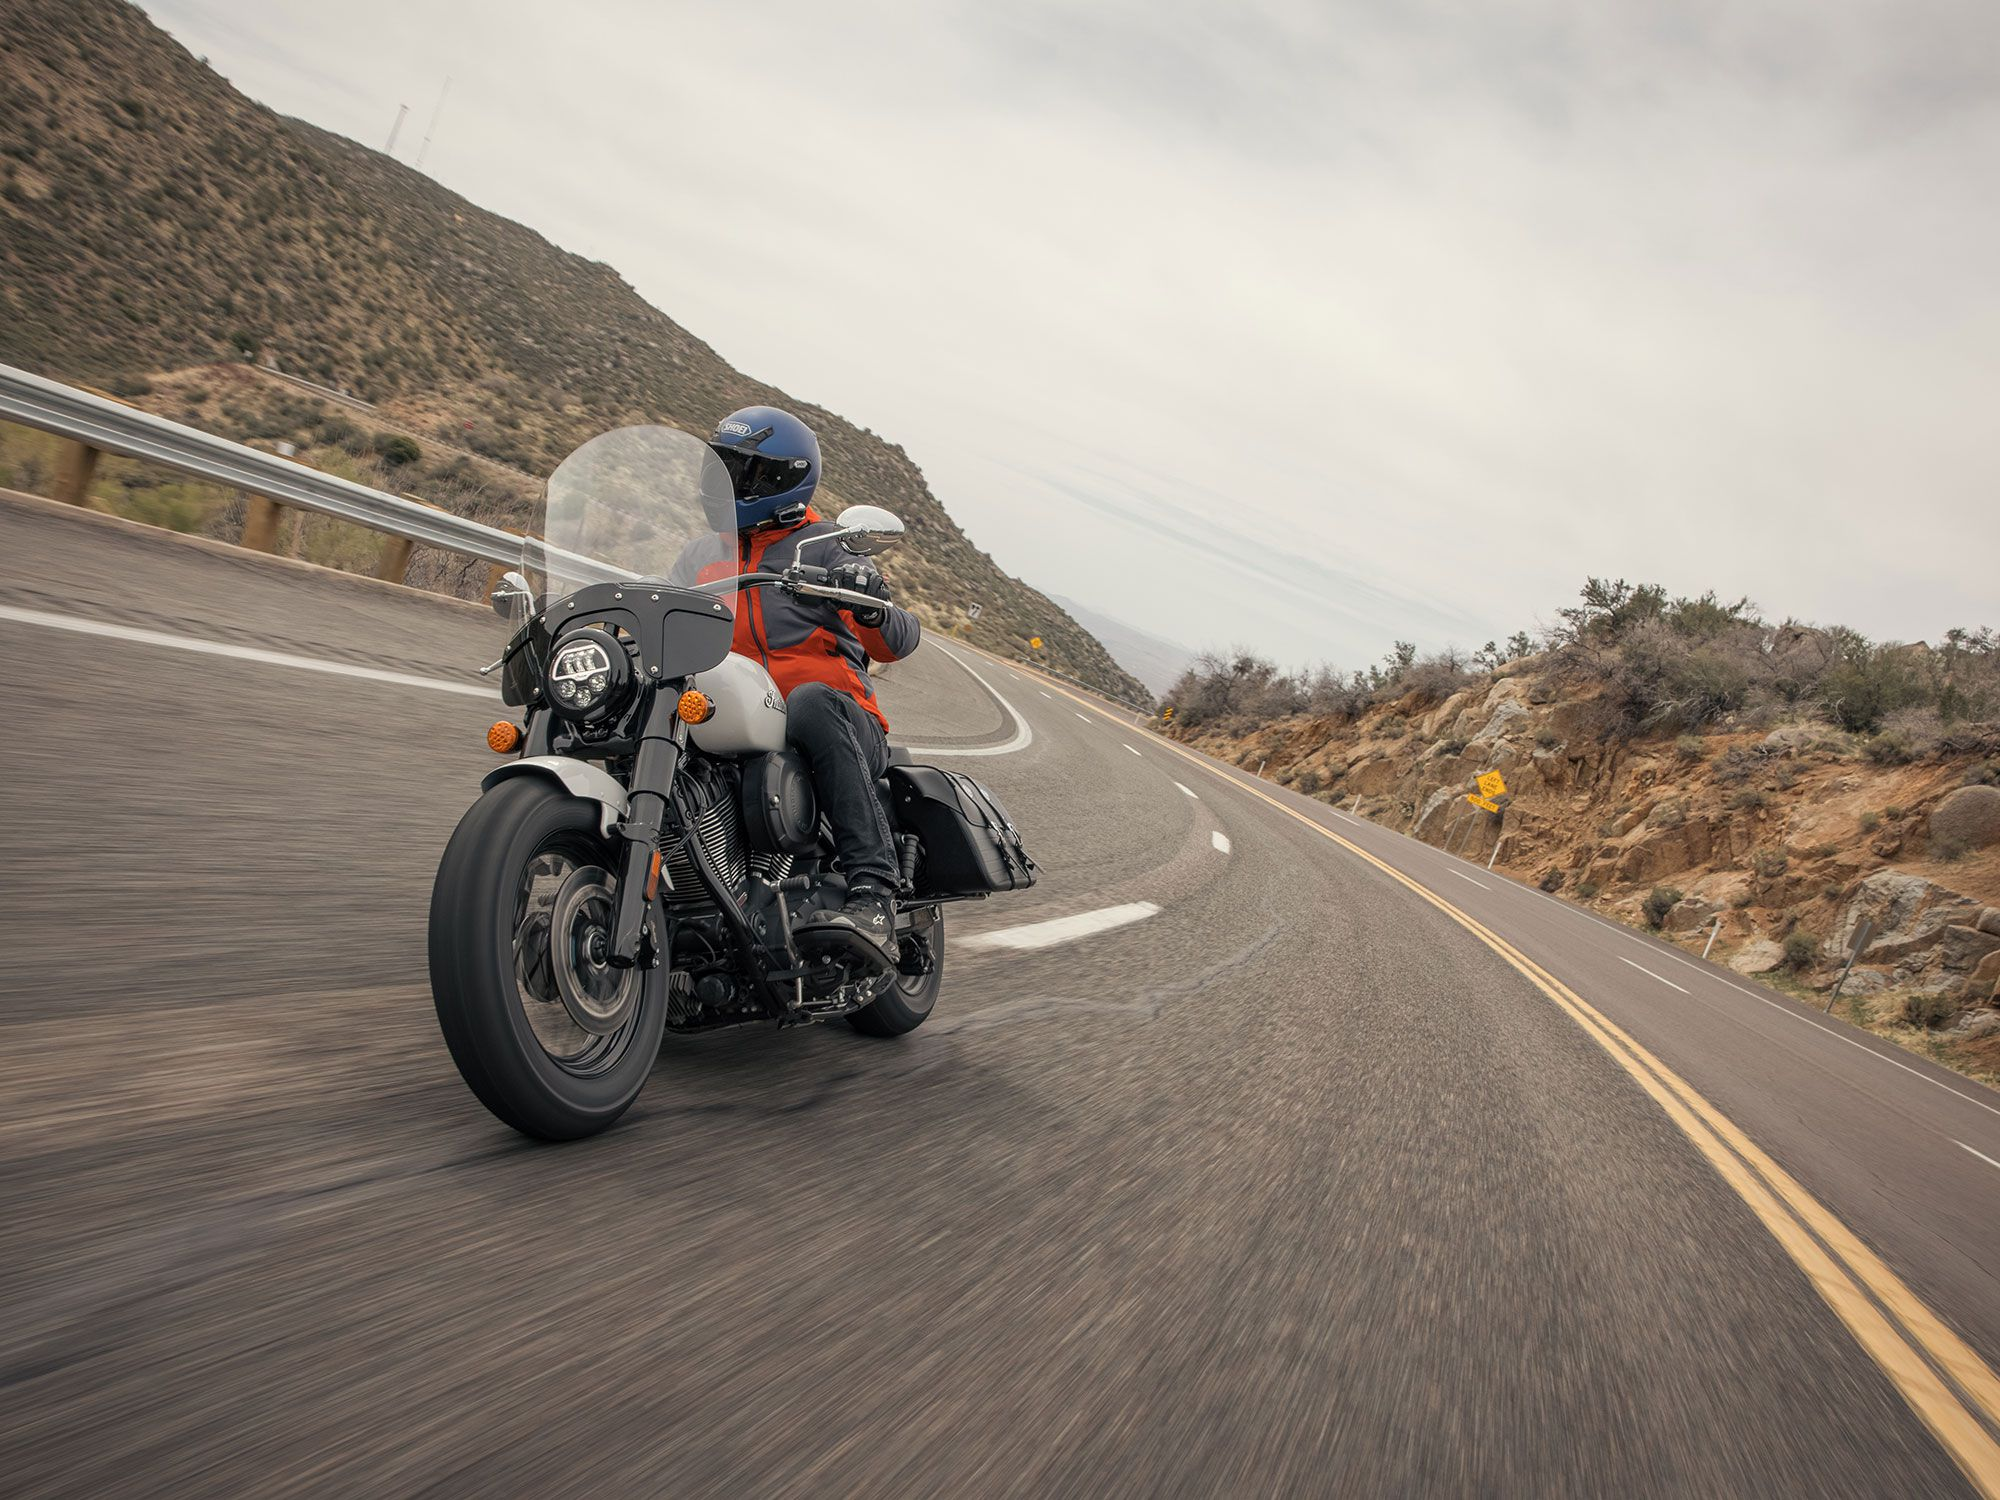 2022 Indian Motorcycle Super Chief MC Commute Review